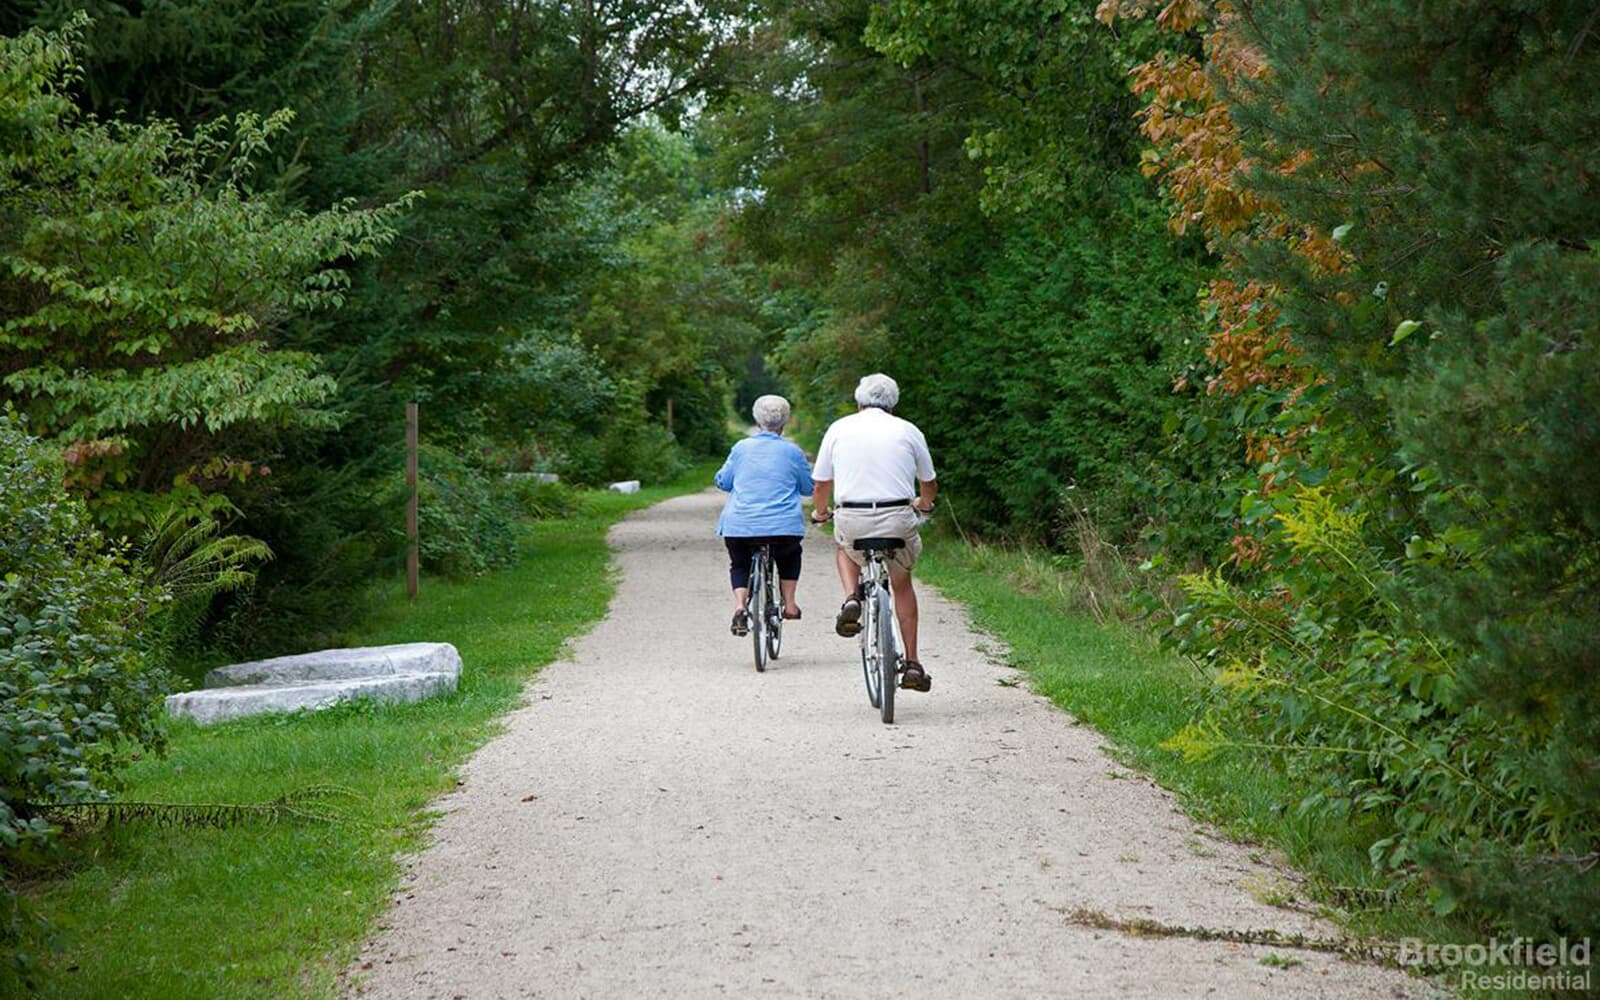 Couple Riding Bicycles From Behind at Park in Caledon East, Ontario.